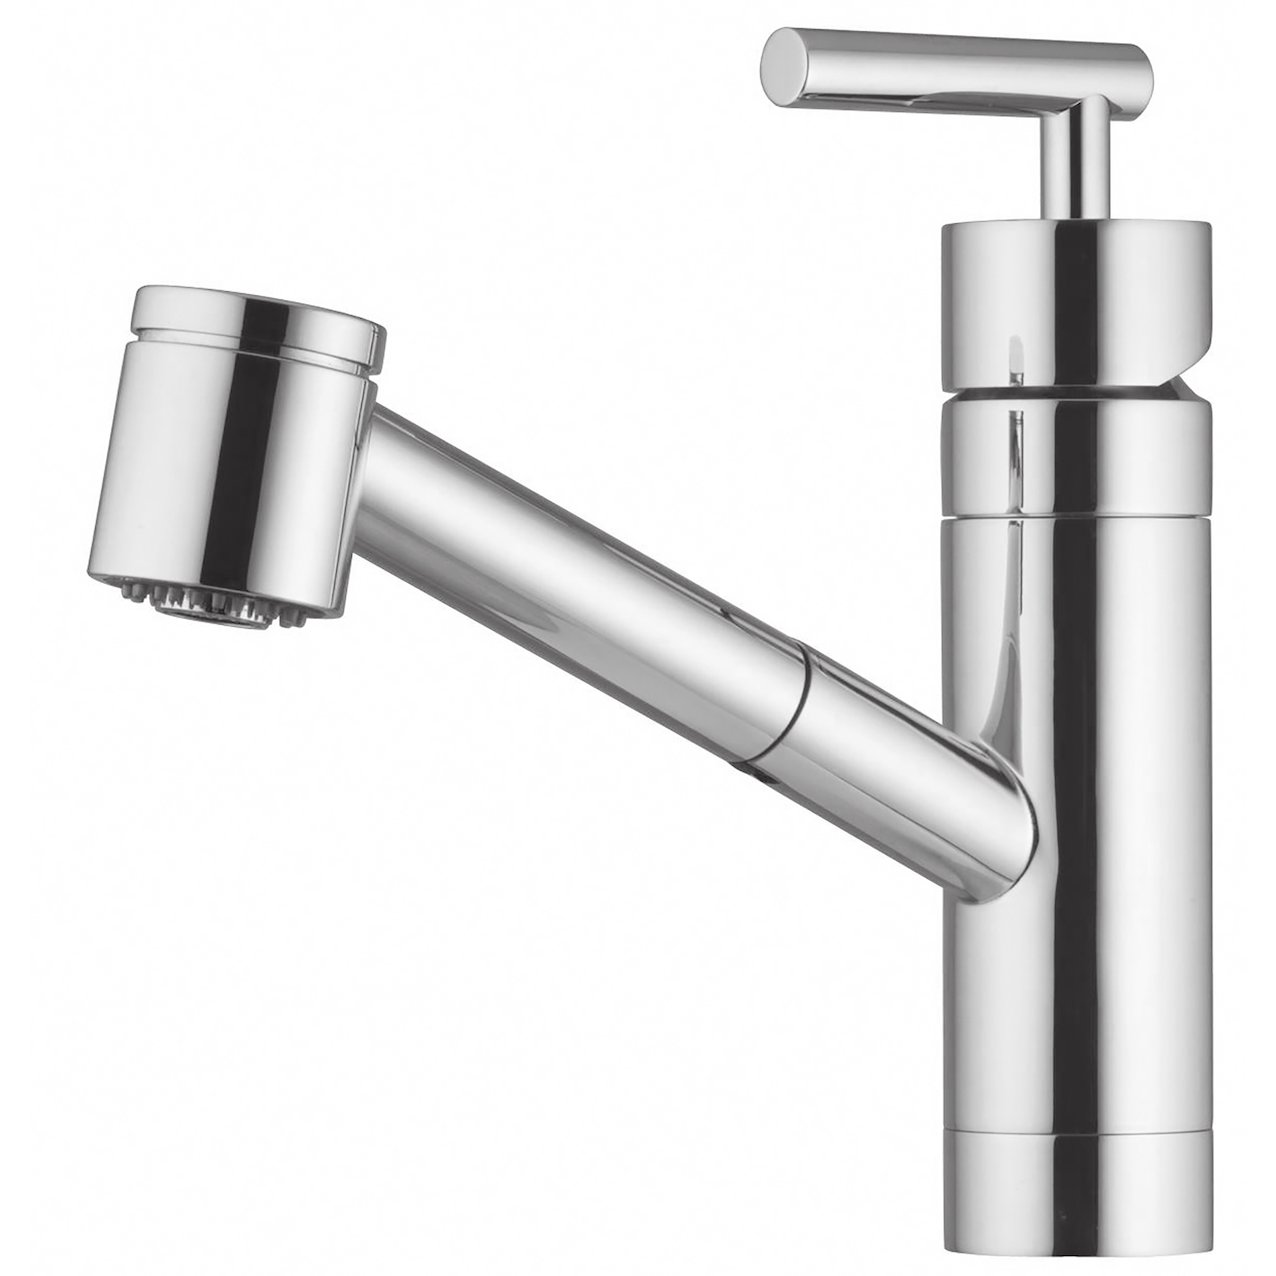 Sink mixer with pull-out spray Energy